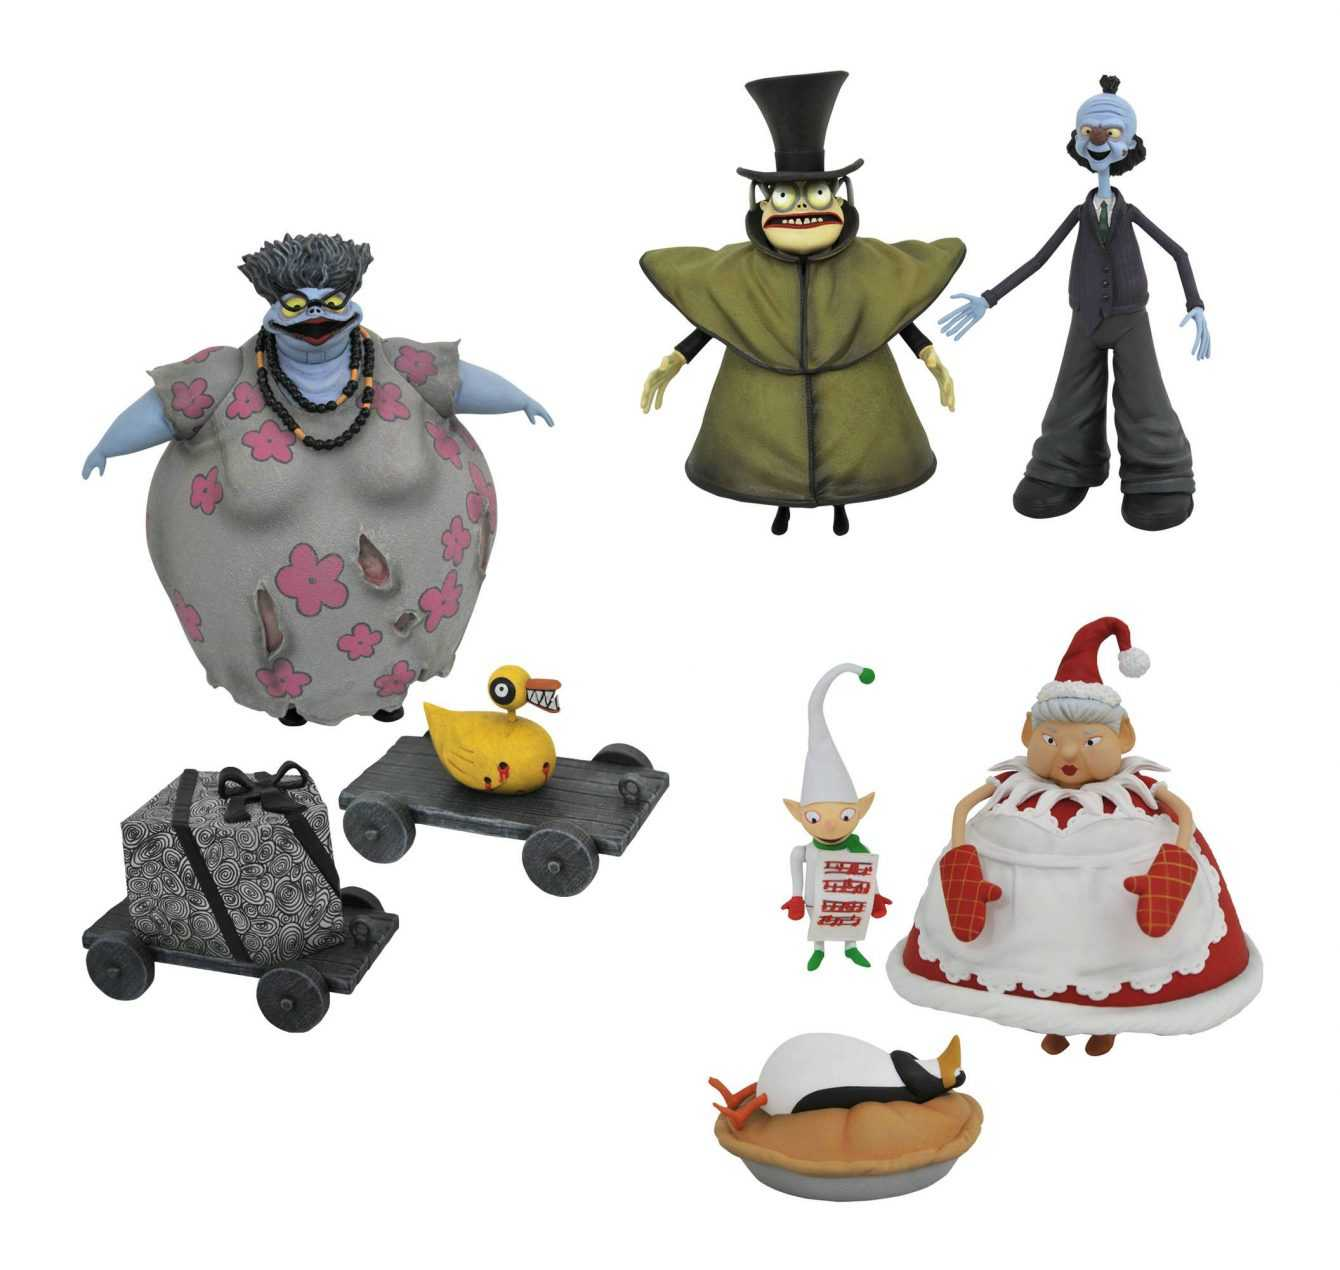 Nightmare Before Christmas: arrivano le nuove action figure!